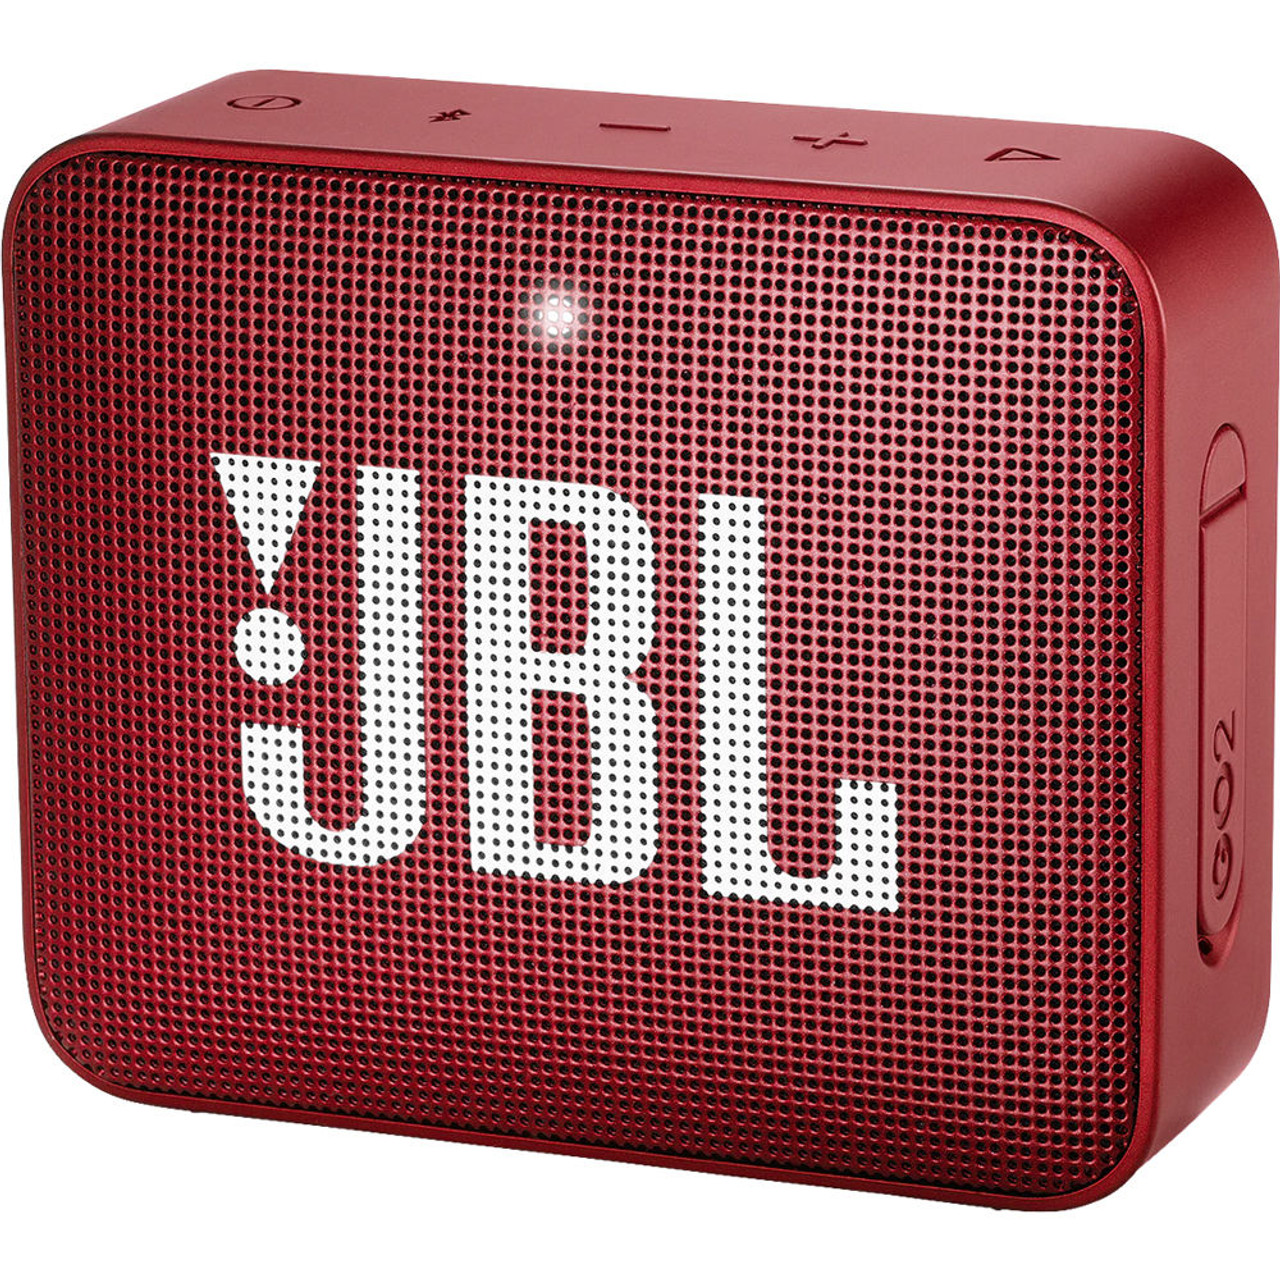 JBL GO2 Portable Wireless Bluetooth Speaker NEW SEALED - BLACK, RED